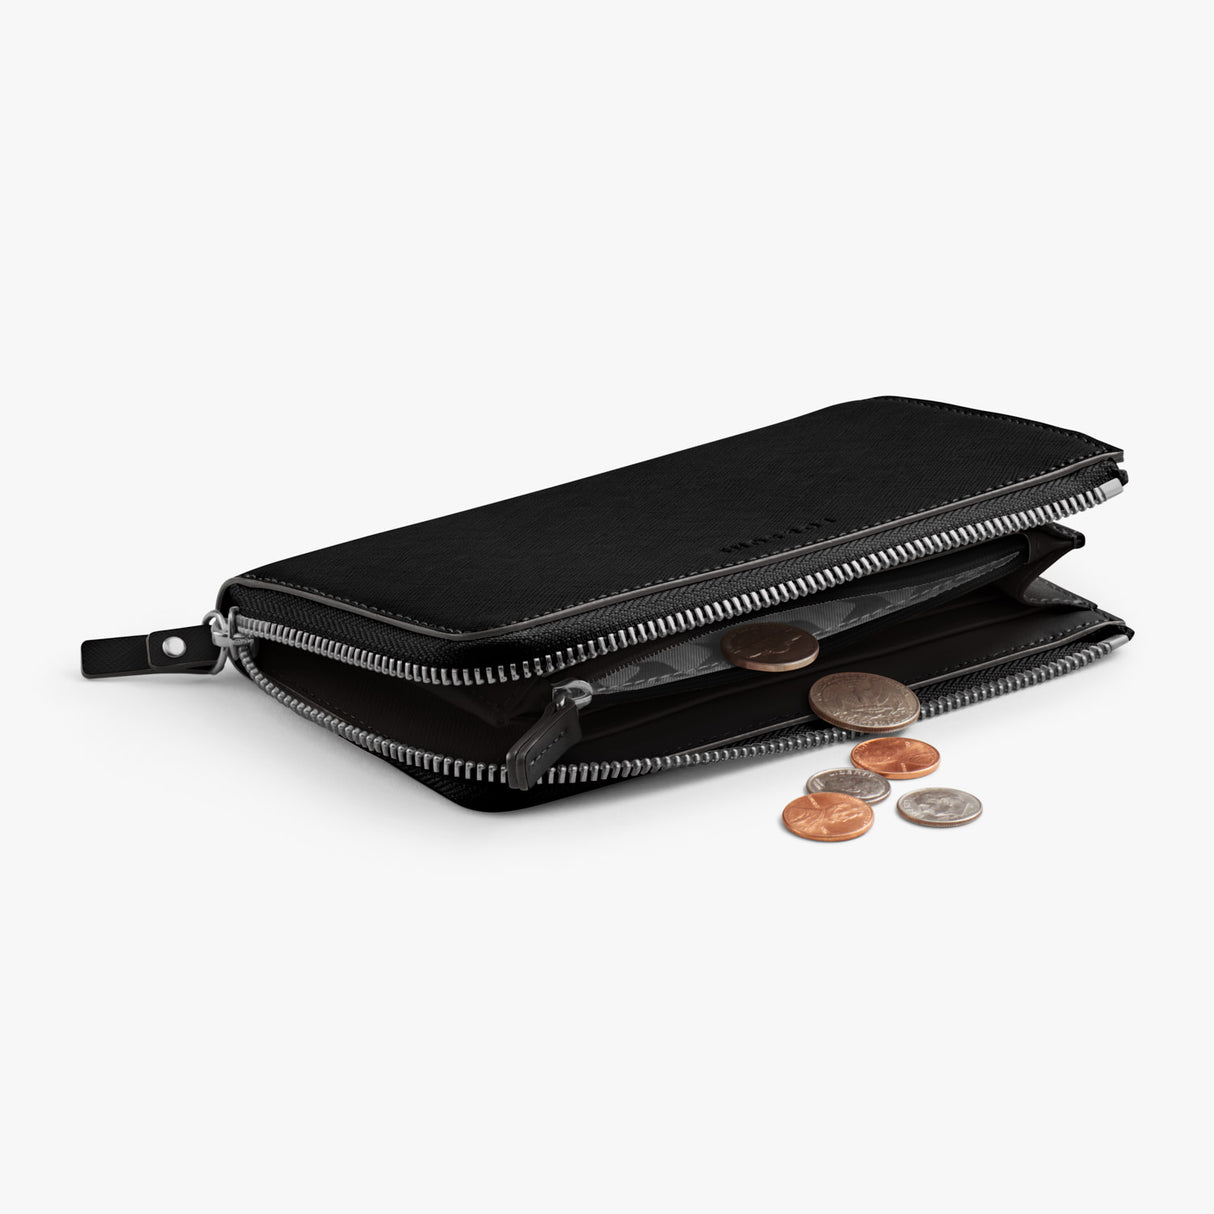 Coin Pocket - Leather Wallet - Saffiano Leather - Black / Silver / Grey - Small Accessory - Lo & Sons